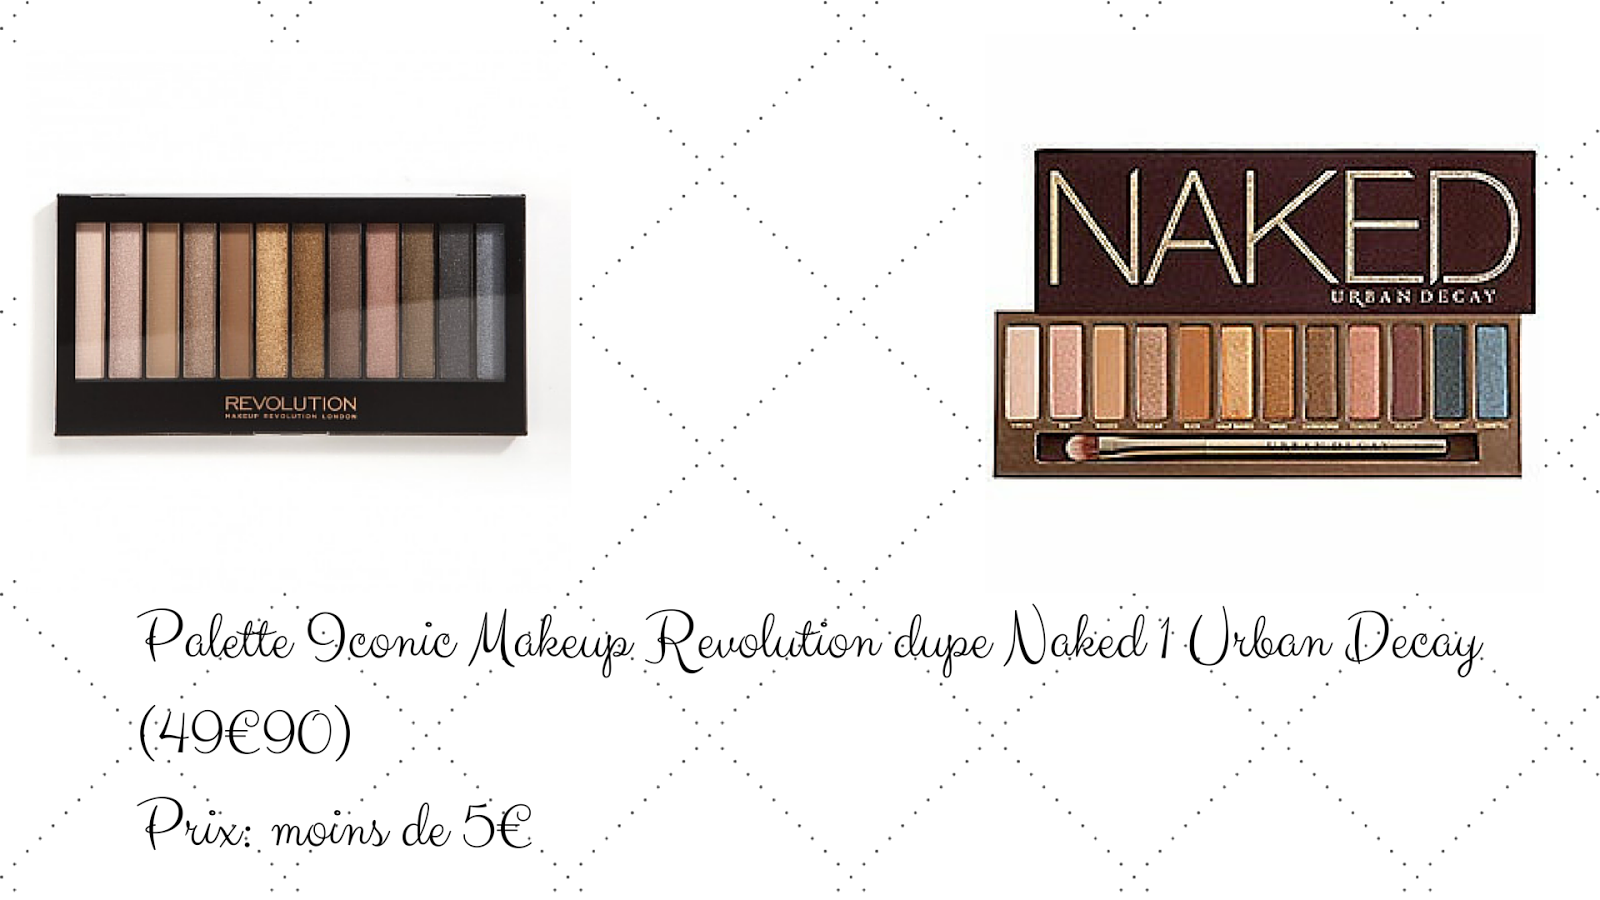 http://www.makeuprevolutionstore.com/index.php/palettes/iconic/redemption-palette-iconic-1.html